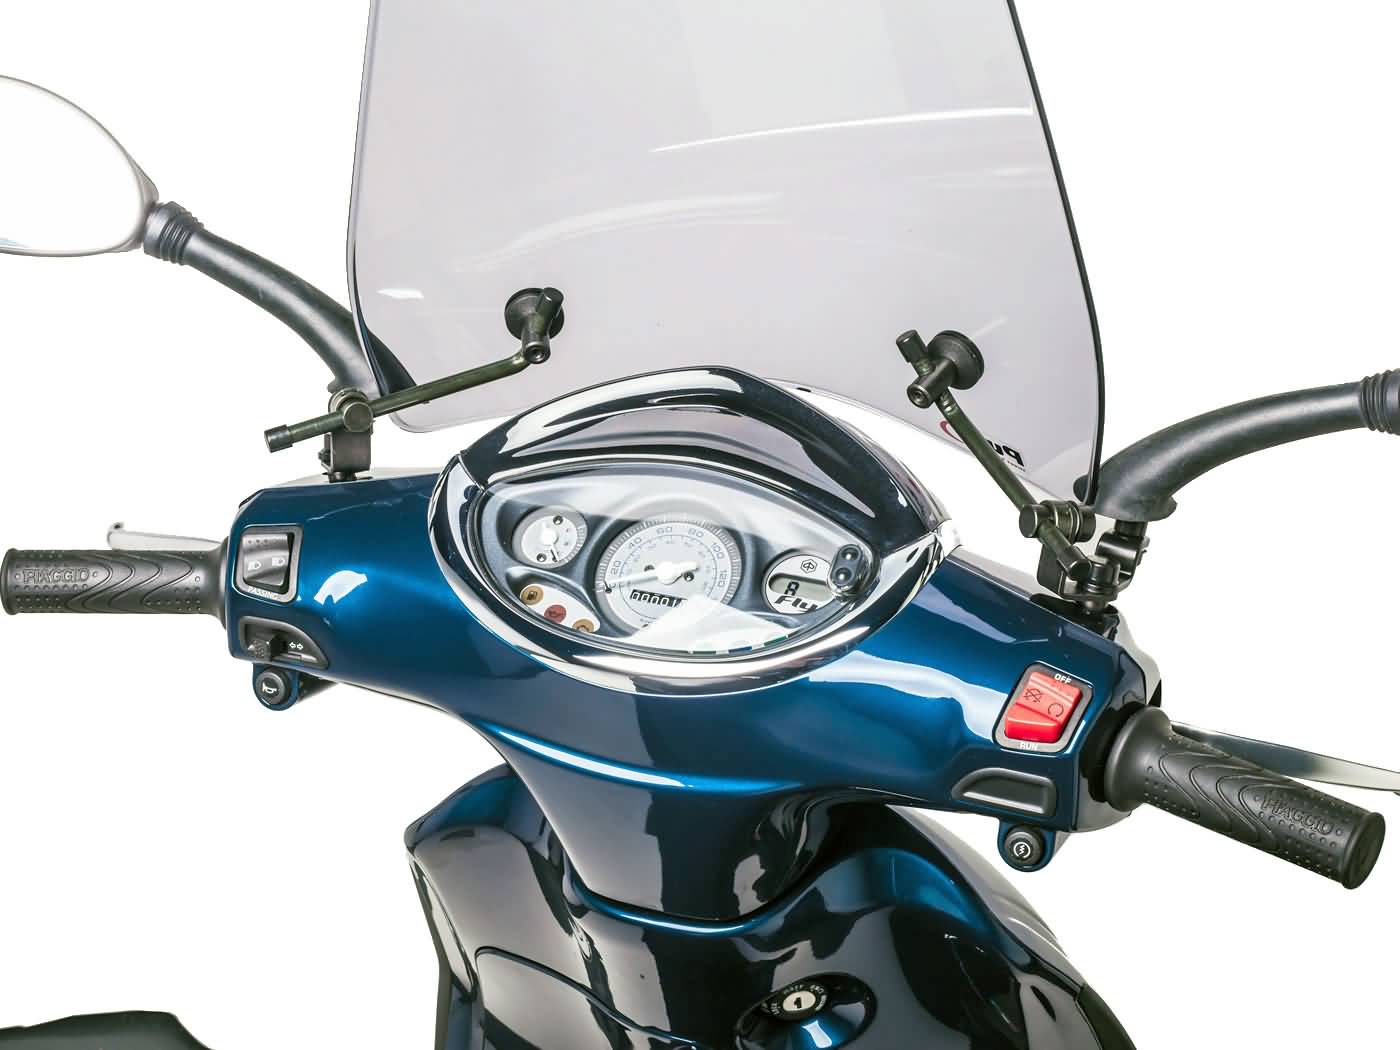 windshield puig trafic smoke for piaggio fly 50 (05-14) | scooter